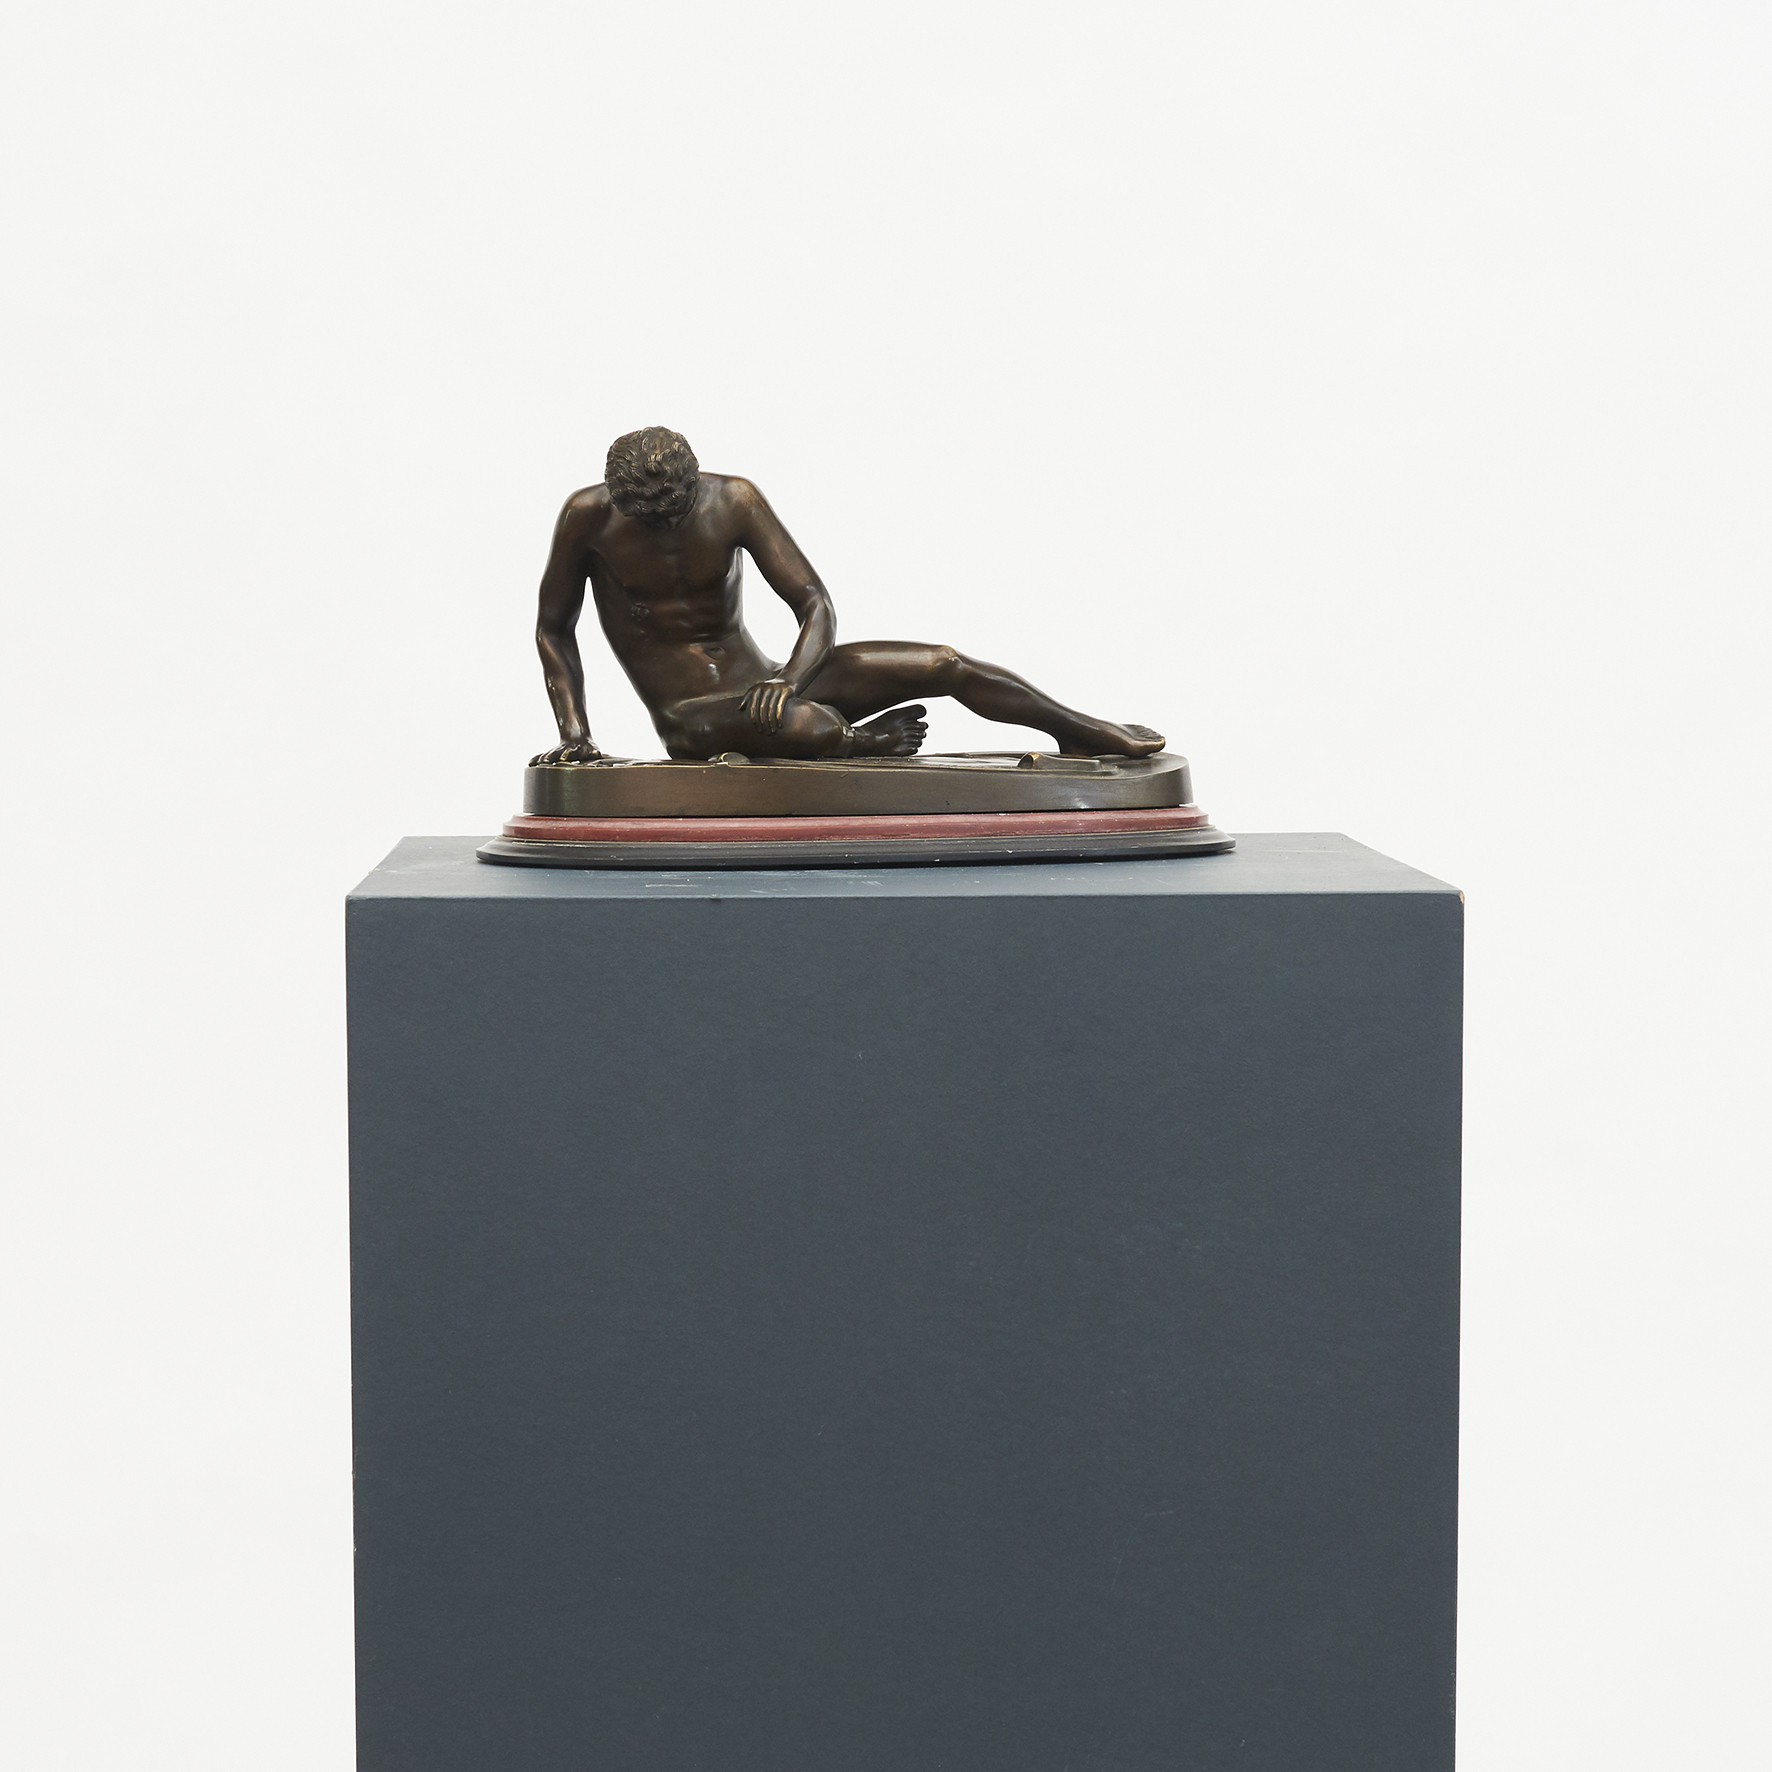 'Grand Tour' bronze skulptur